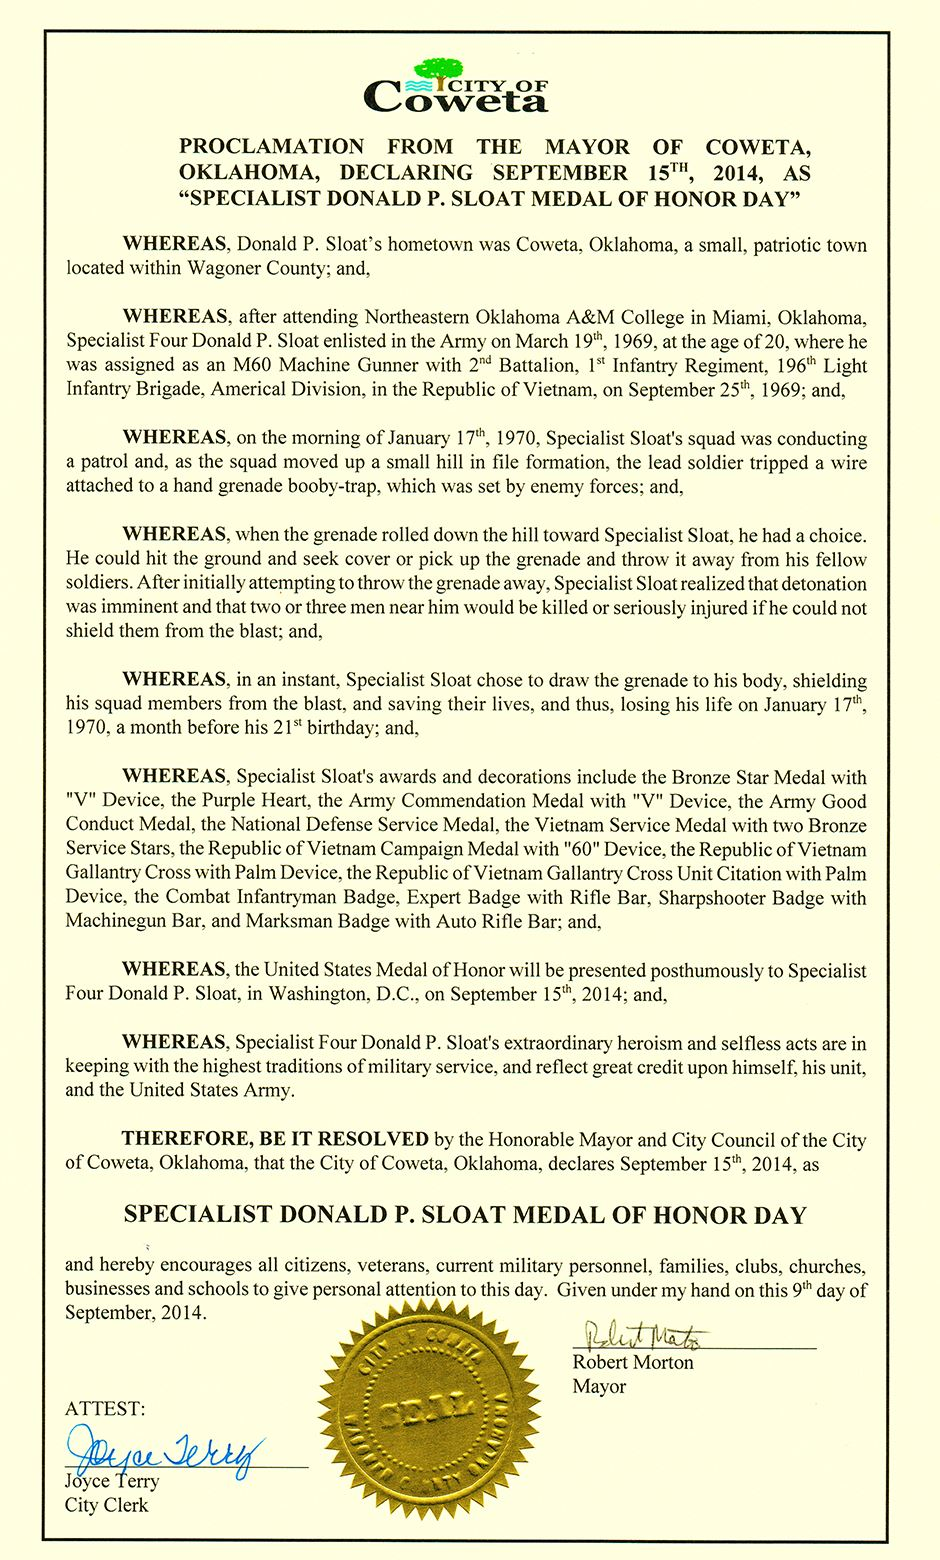 Proclamation from the Mayor